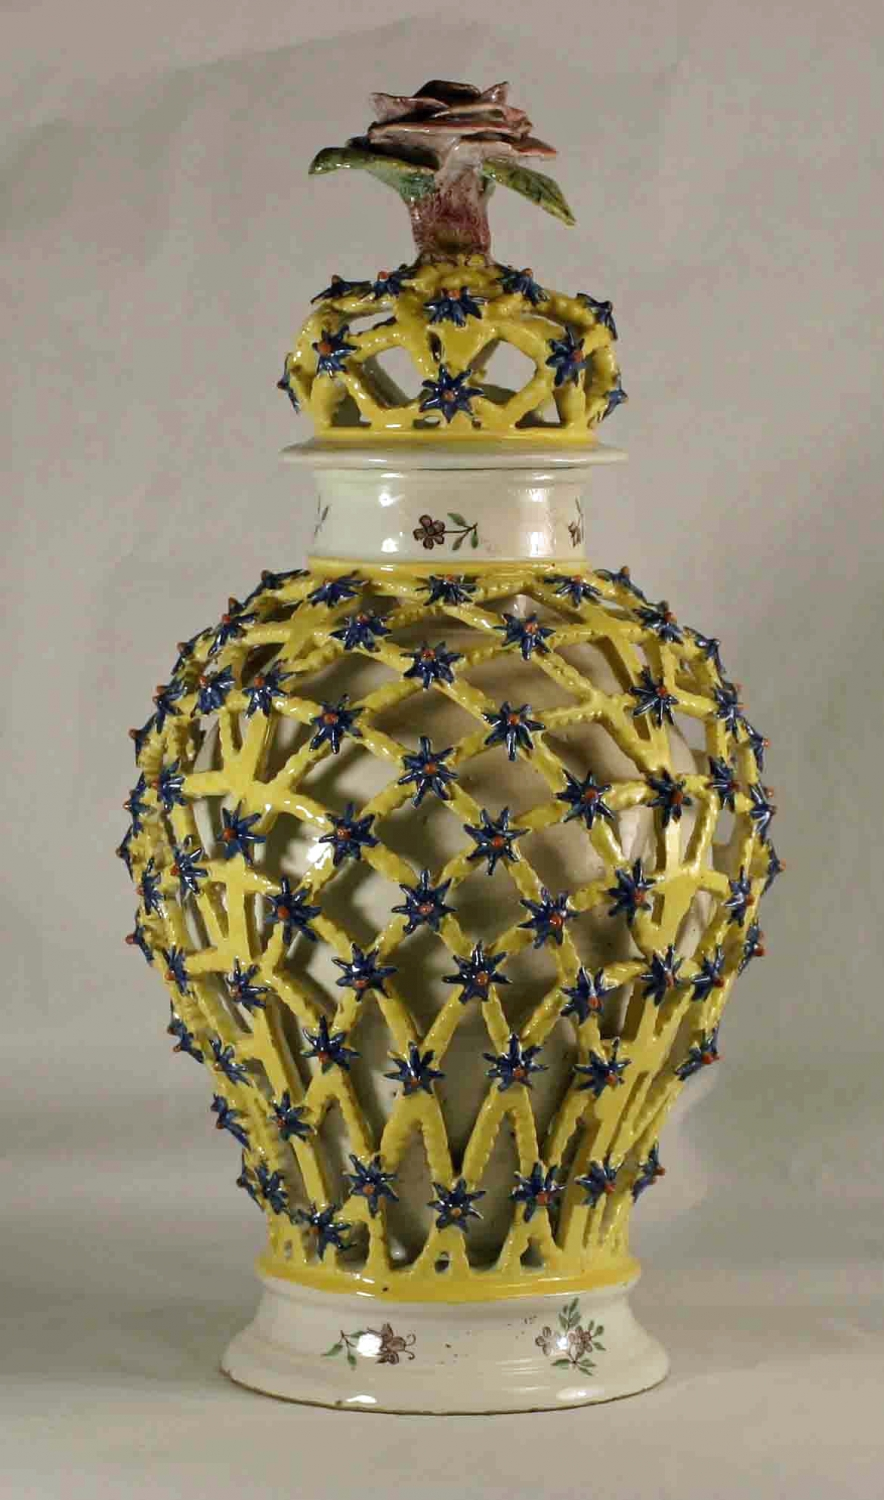 Hannoversch-Münden vase and cover